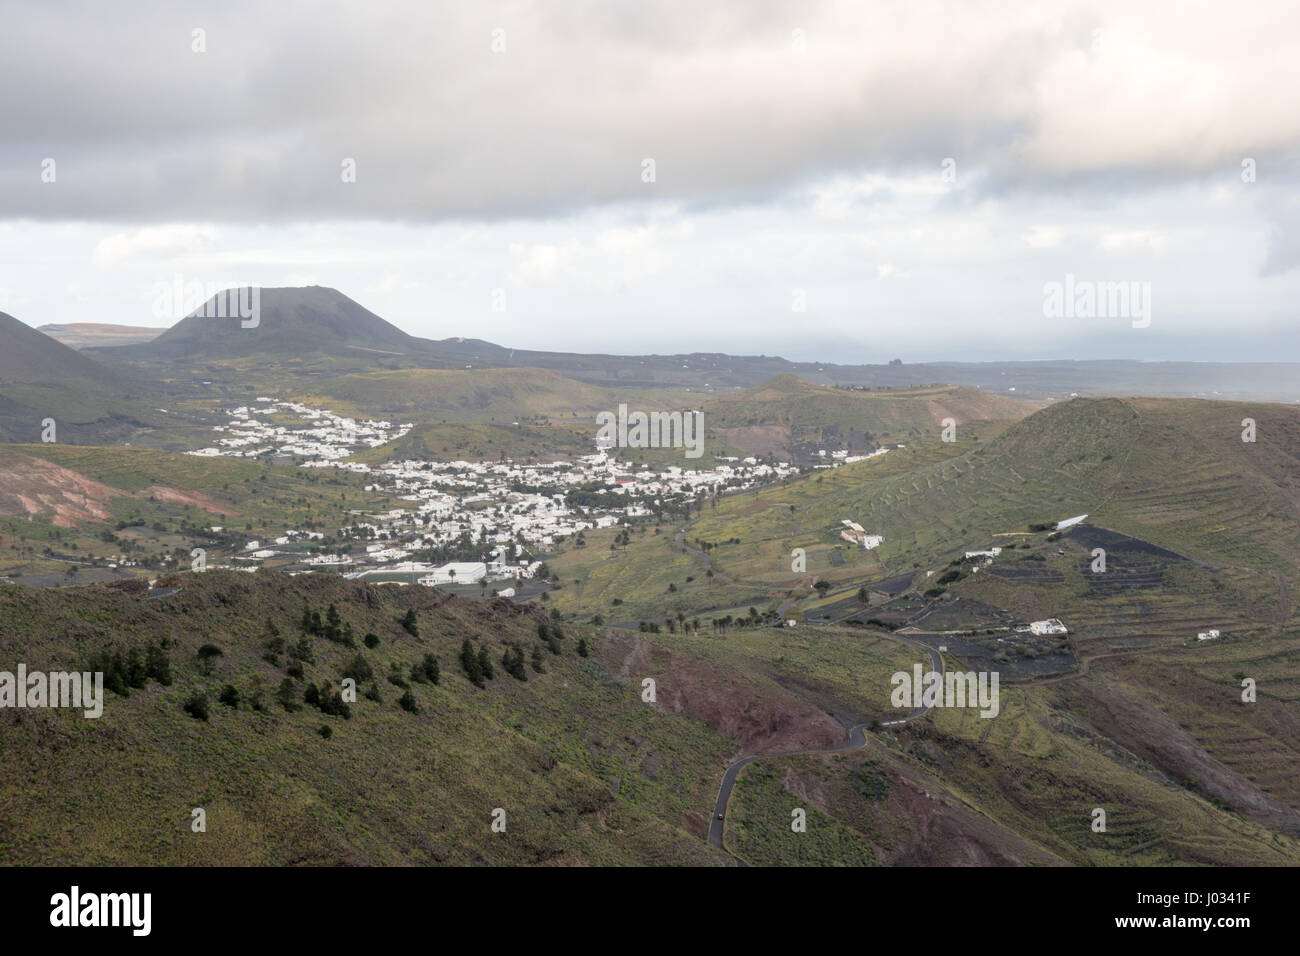 View of Haria from Mirador de Haría in Lanzarote on a cloudy  winter day. This town is famous for being shaped - Stock Image